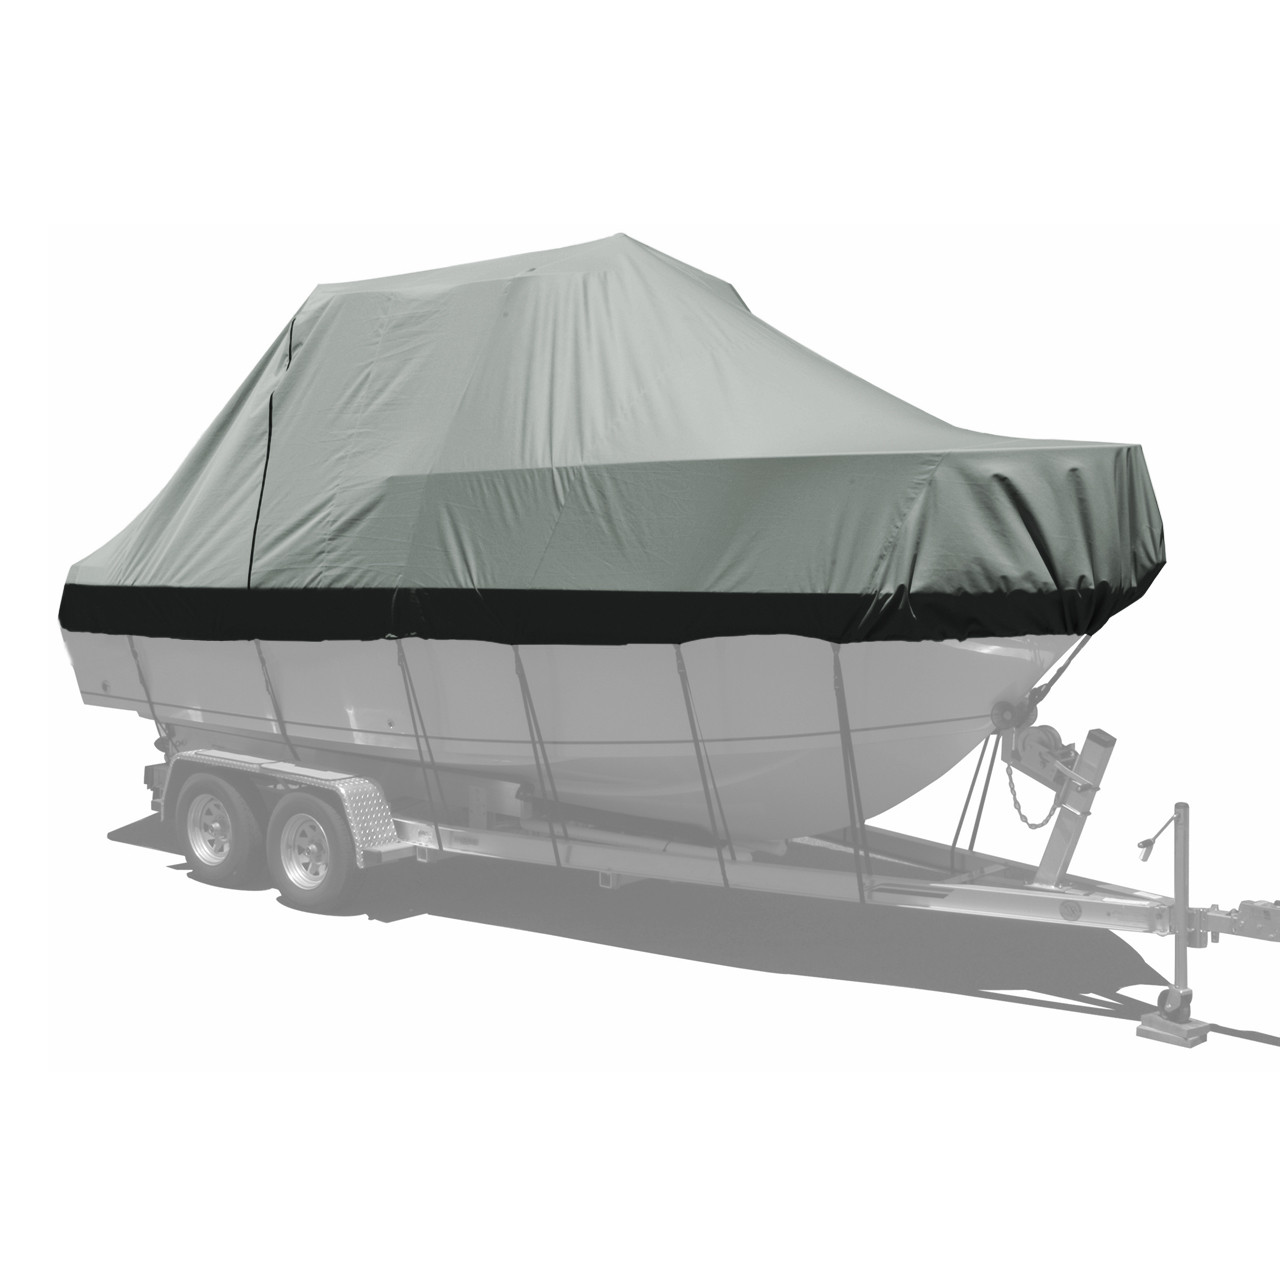 Carver custom boat cover with haze gray double duck canvas